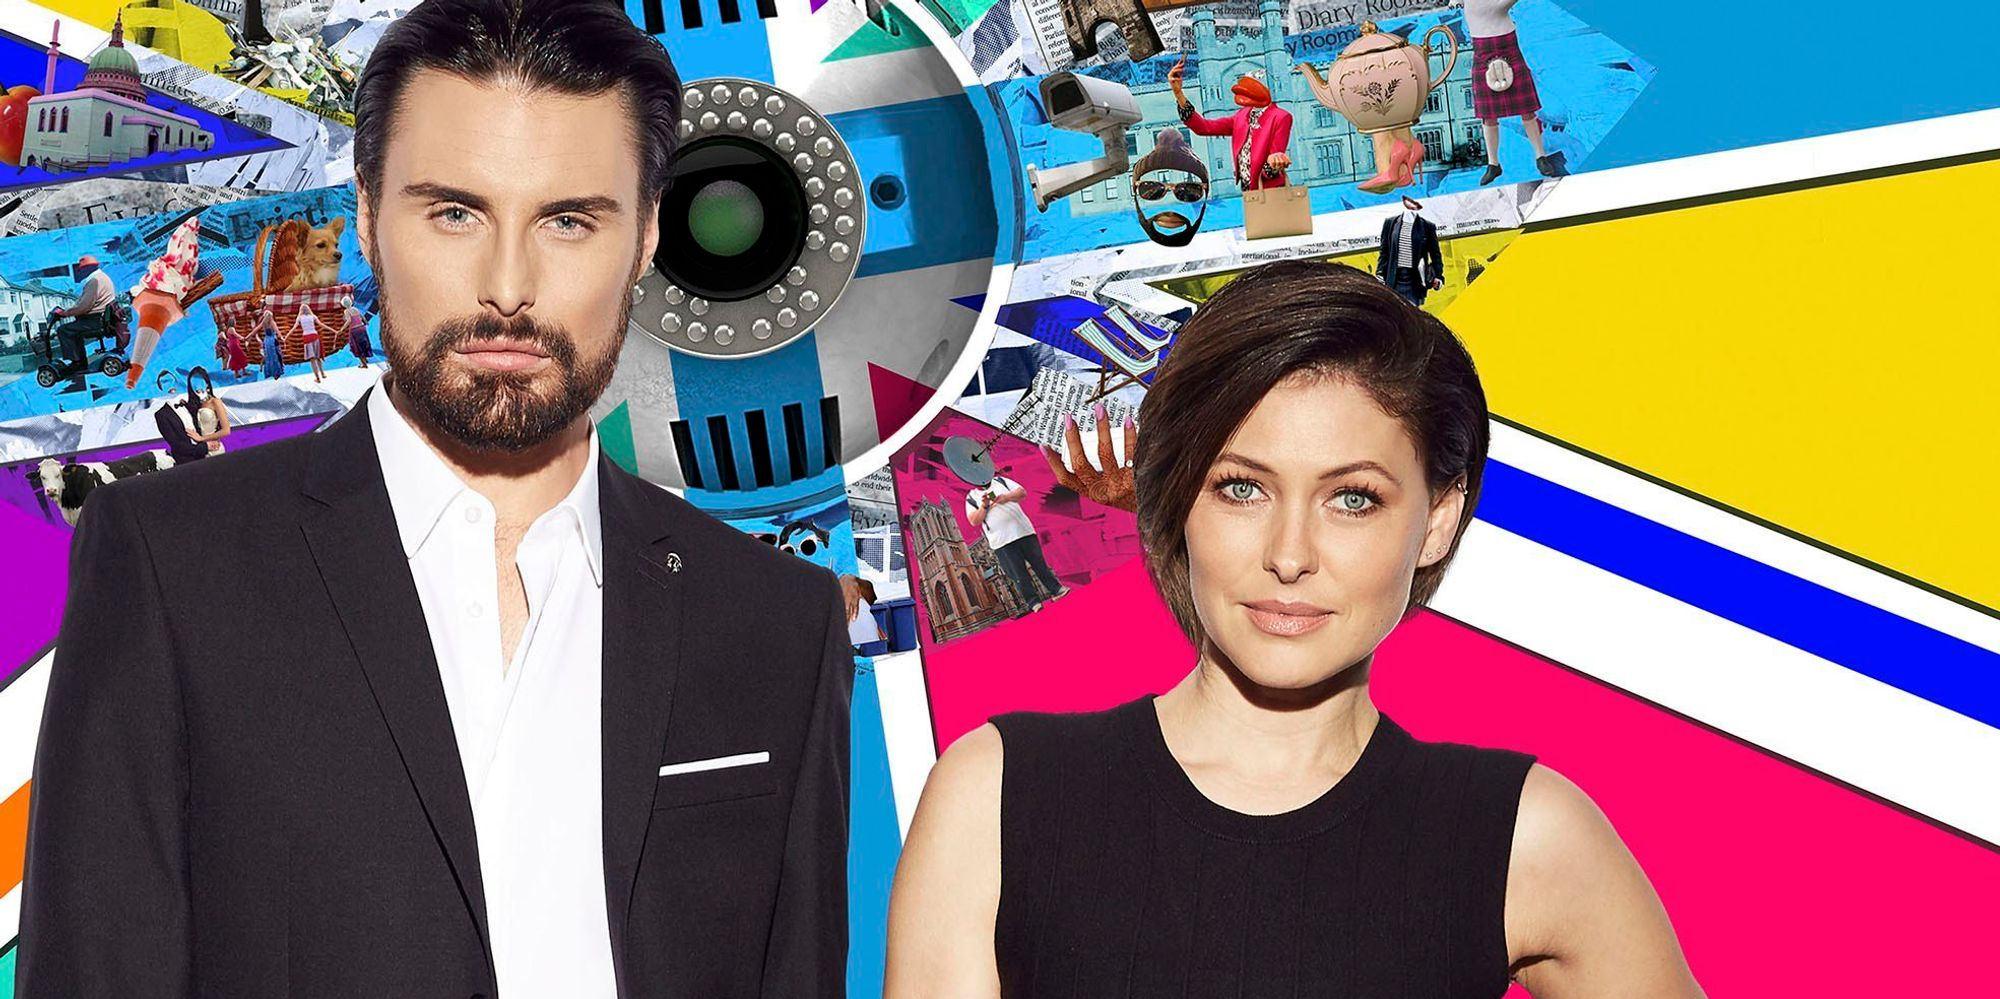 'Big Brother' Celebrity Edition Coming to CBS | Hollywood ...